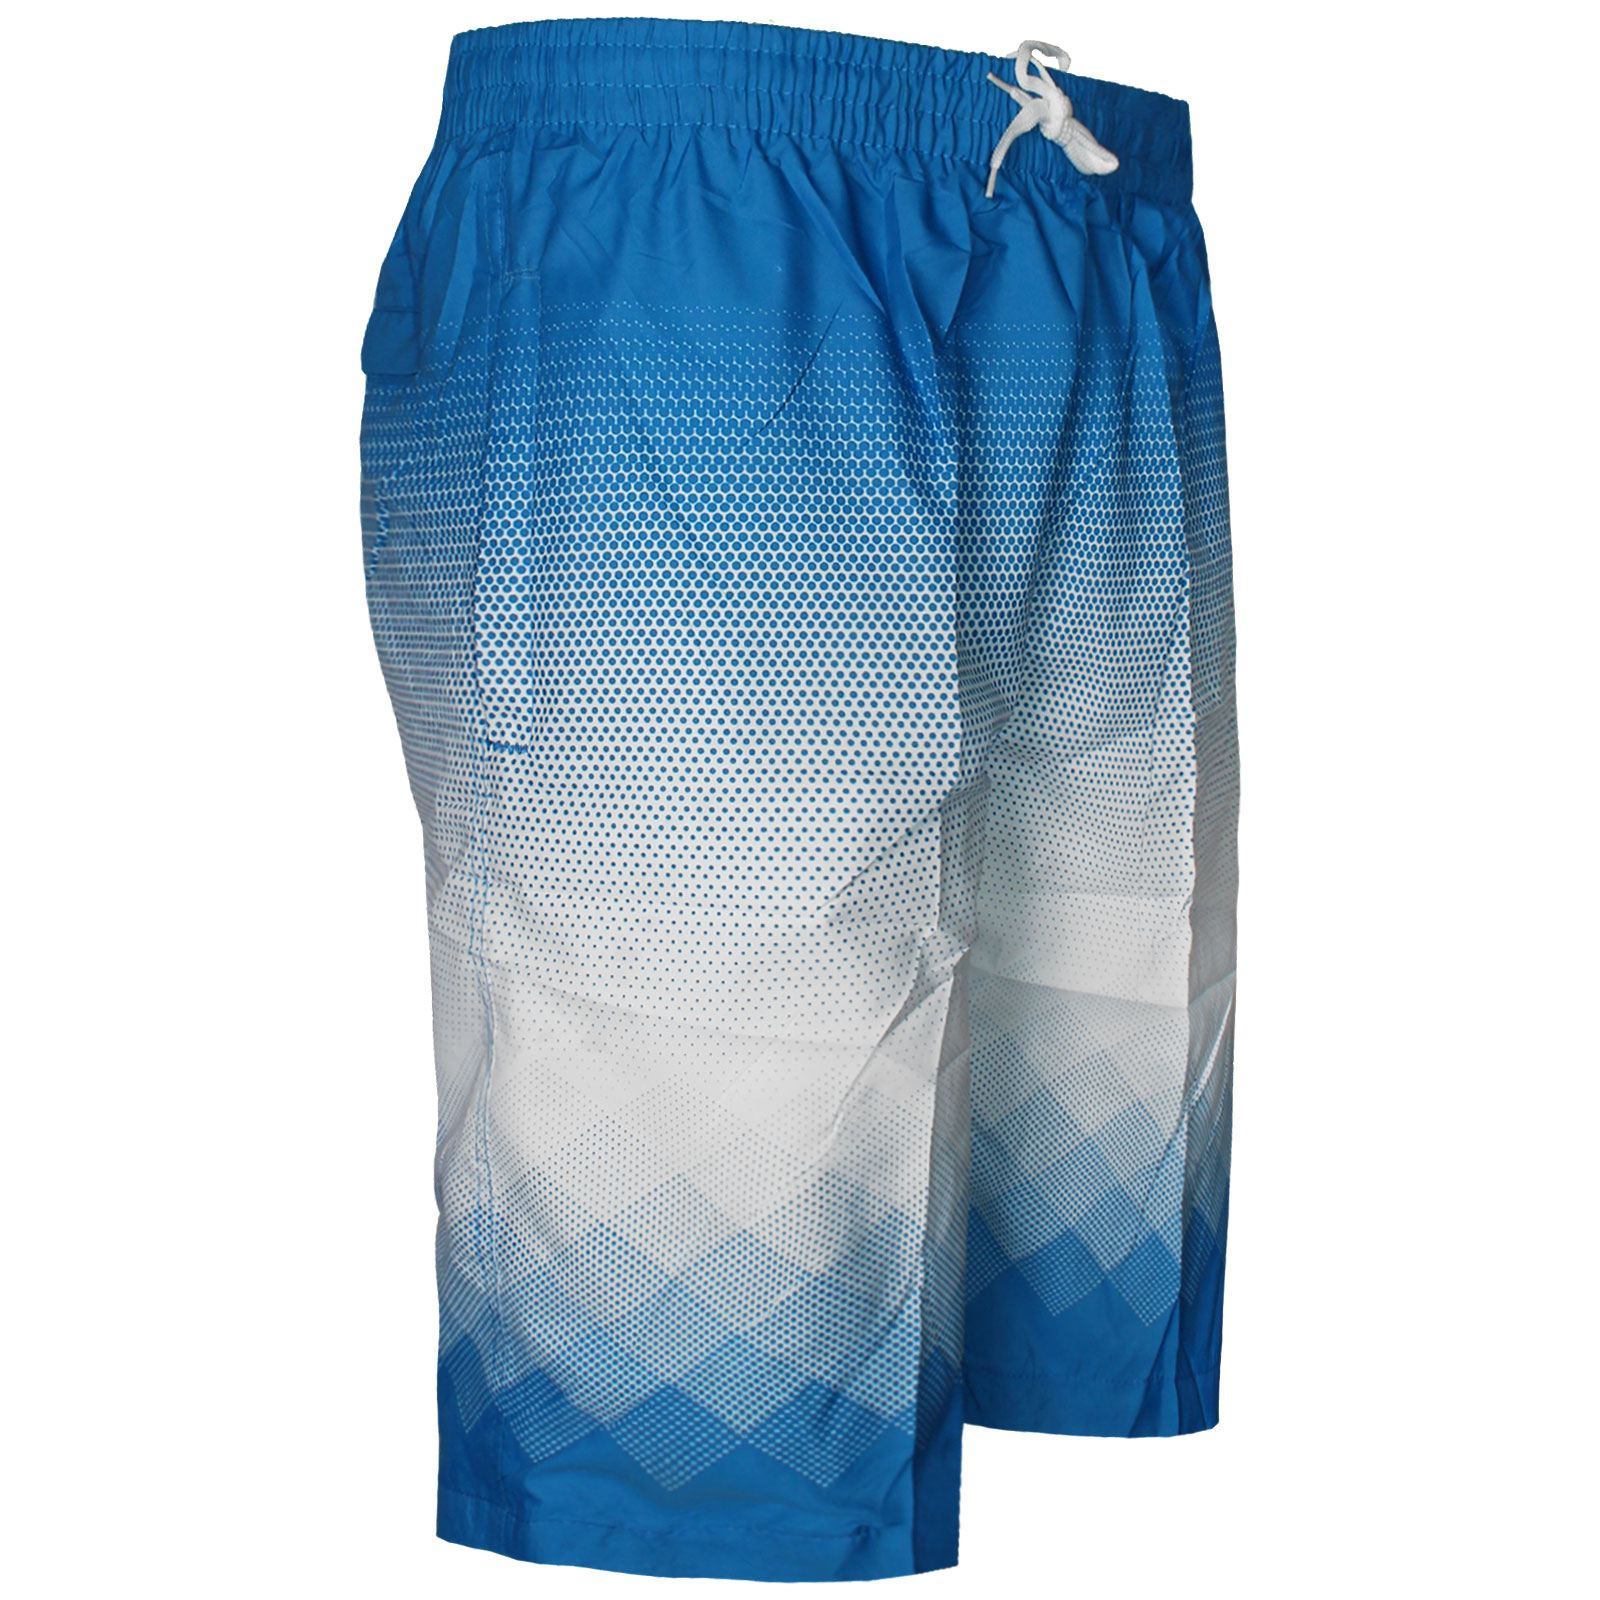 MENS SWIMMING TRUNKS BOYS MESH LINED BOARD SHORTS SUMMER BEACH HOLIDAY SURFING